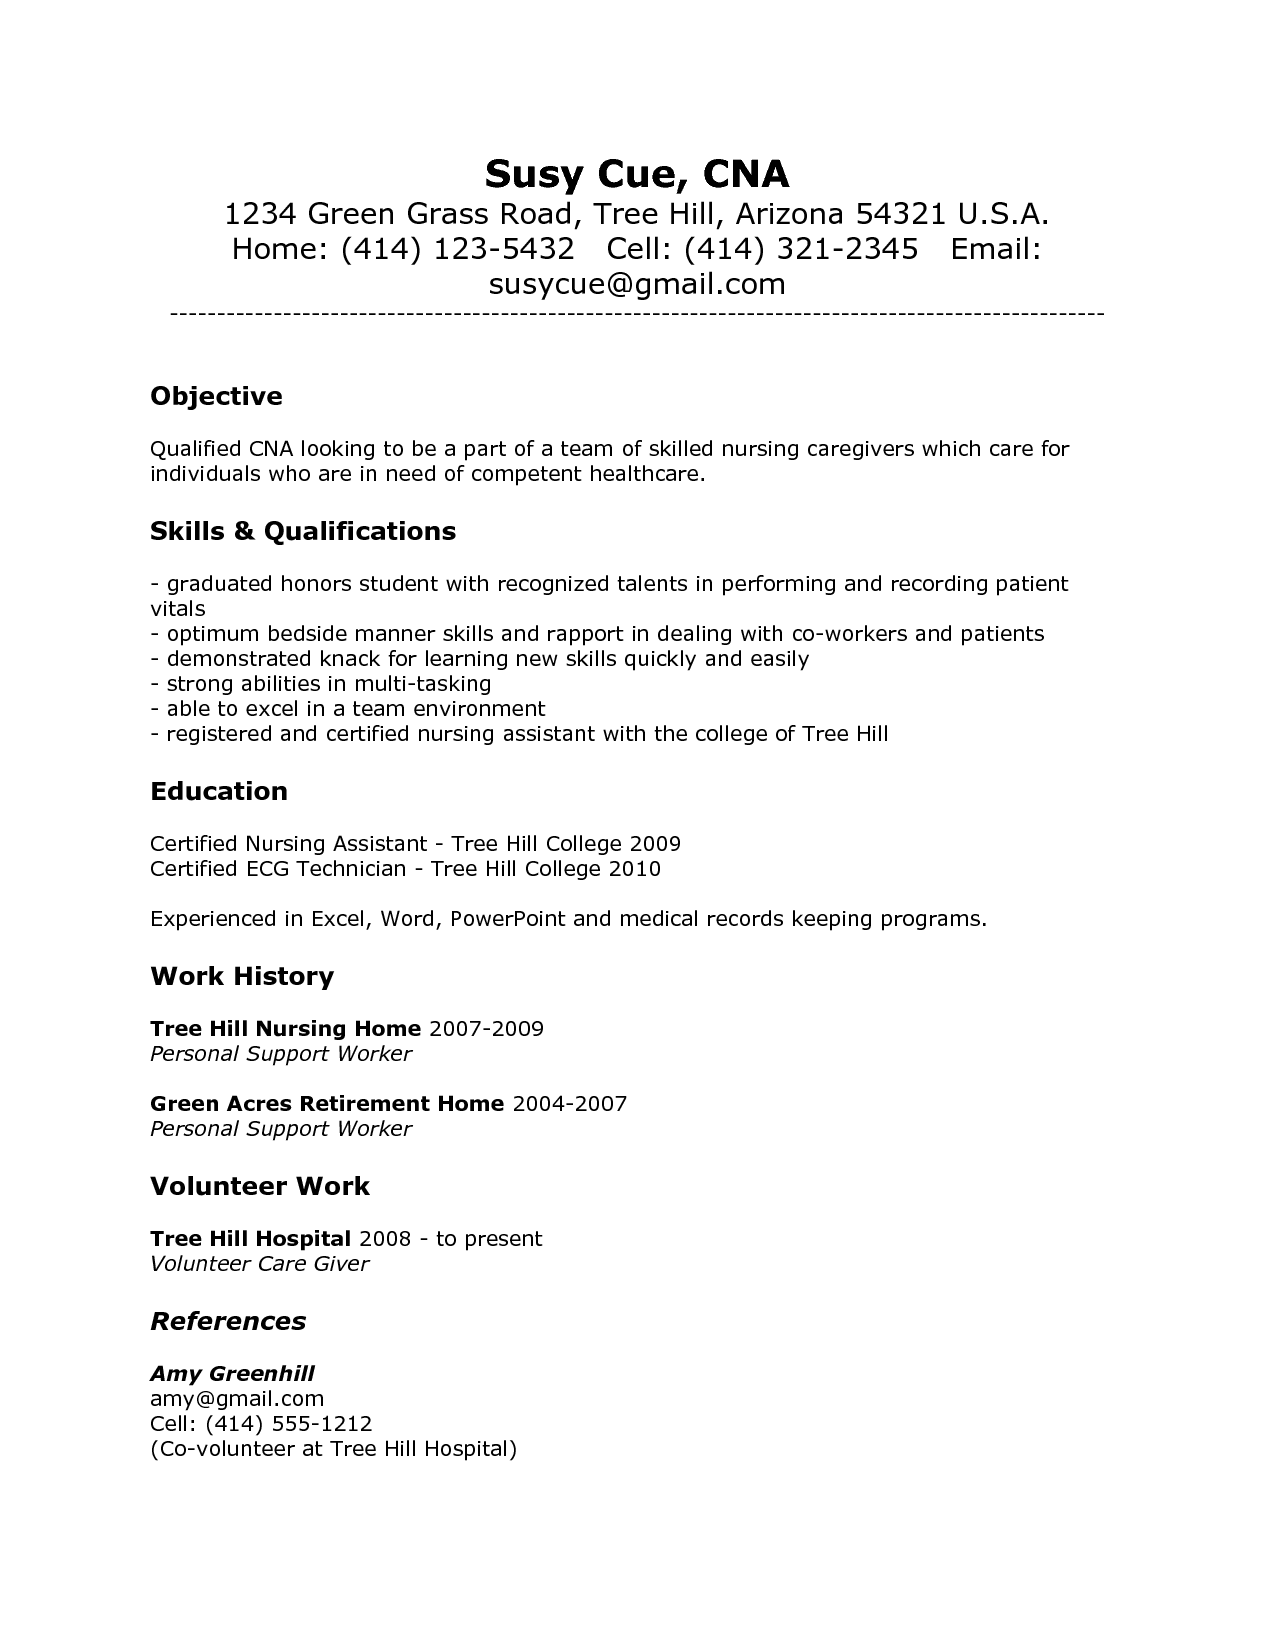 Cna Resume Objective Statement Examples Unique Resume Examples Cna  Pinterest  Resume Examples And Resume Objective